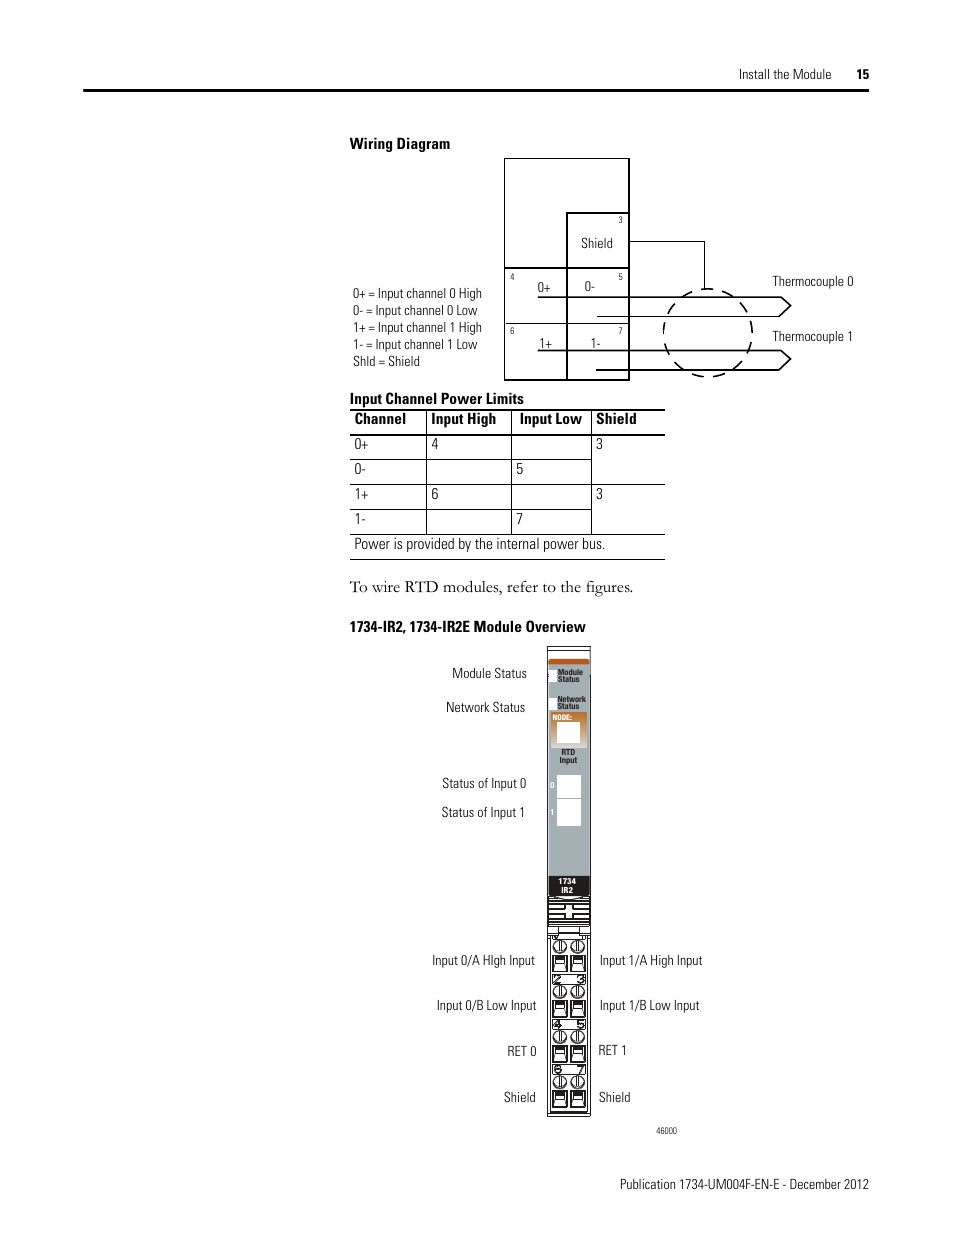 Input Module Wiring Diagram Libraries For Thermocouple Rockwell Automation 1734 It2i And Rtd Userrockwell